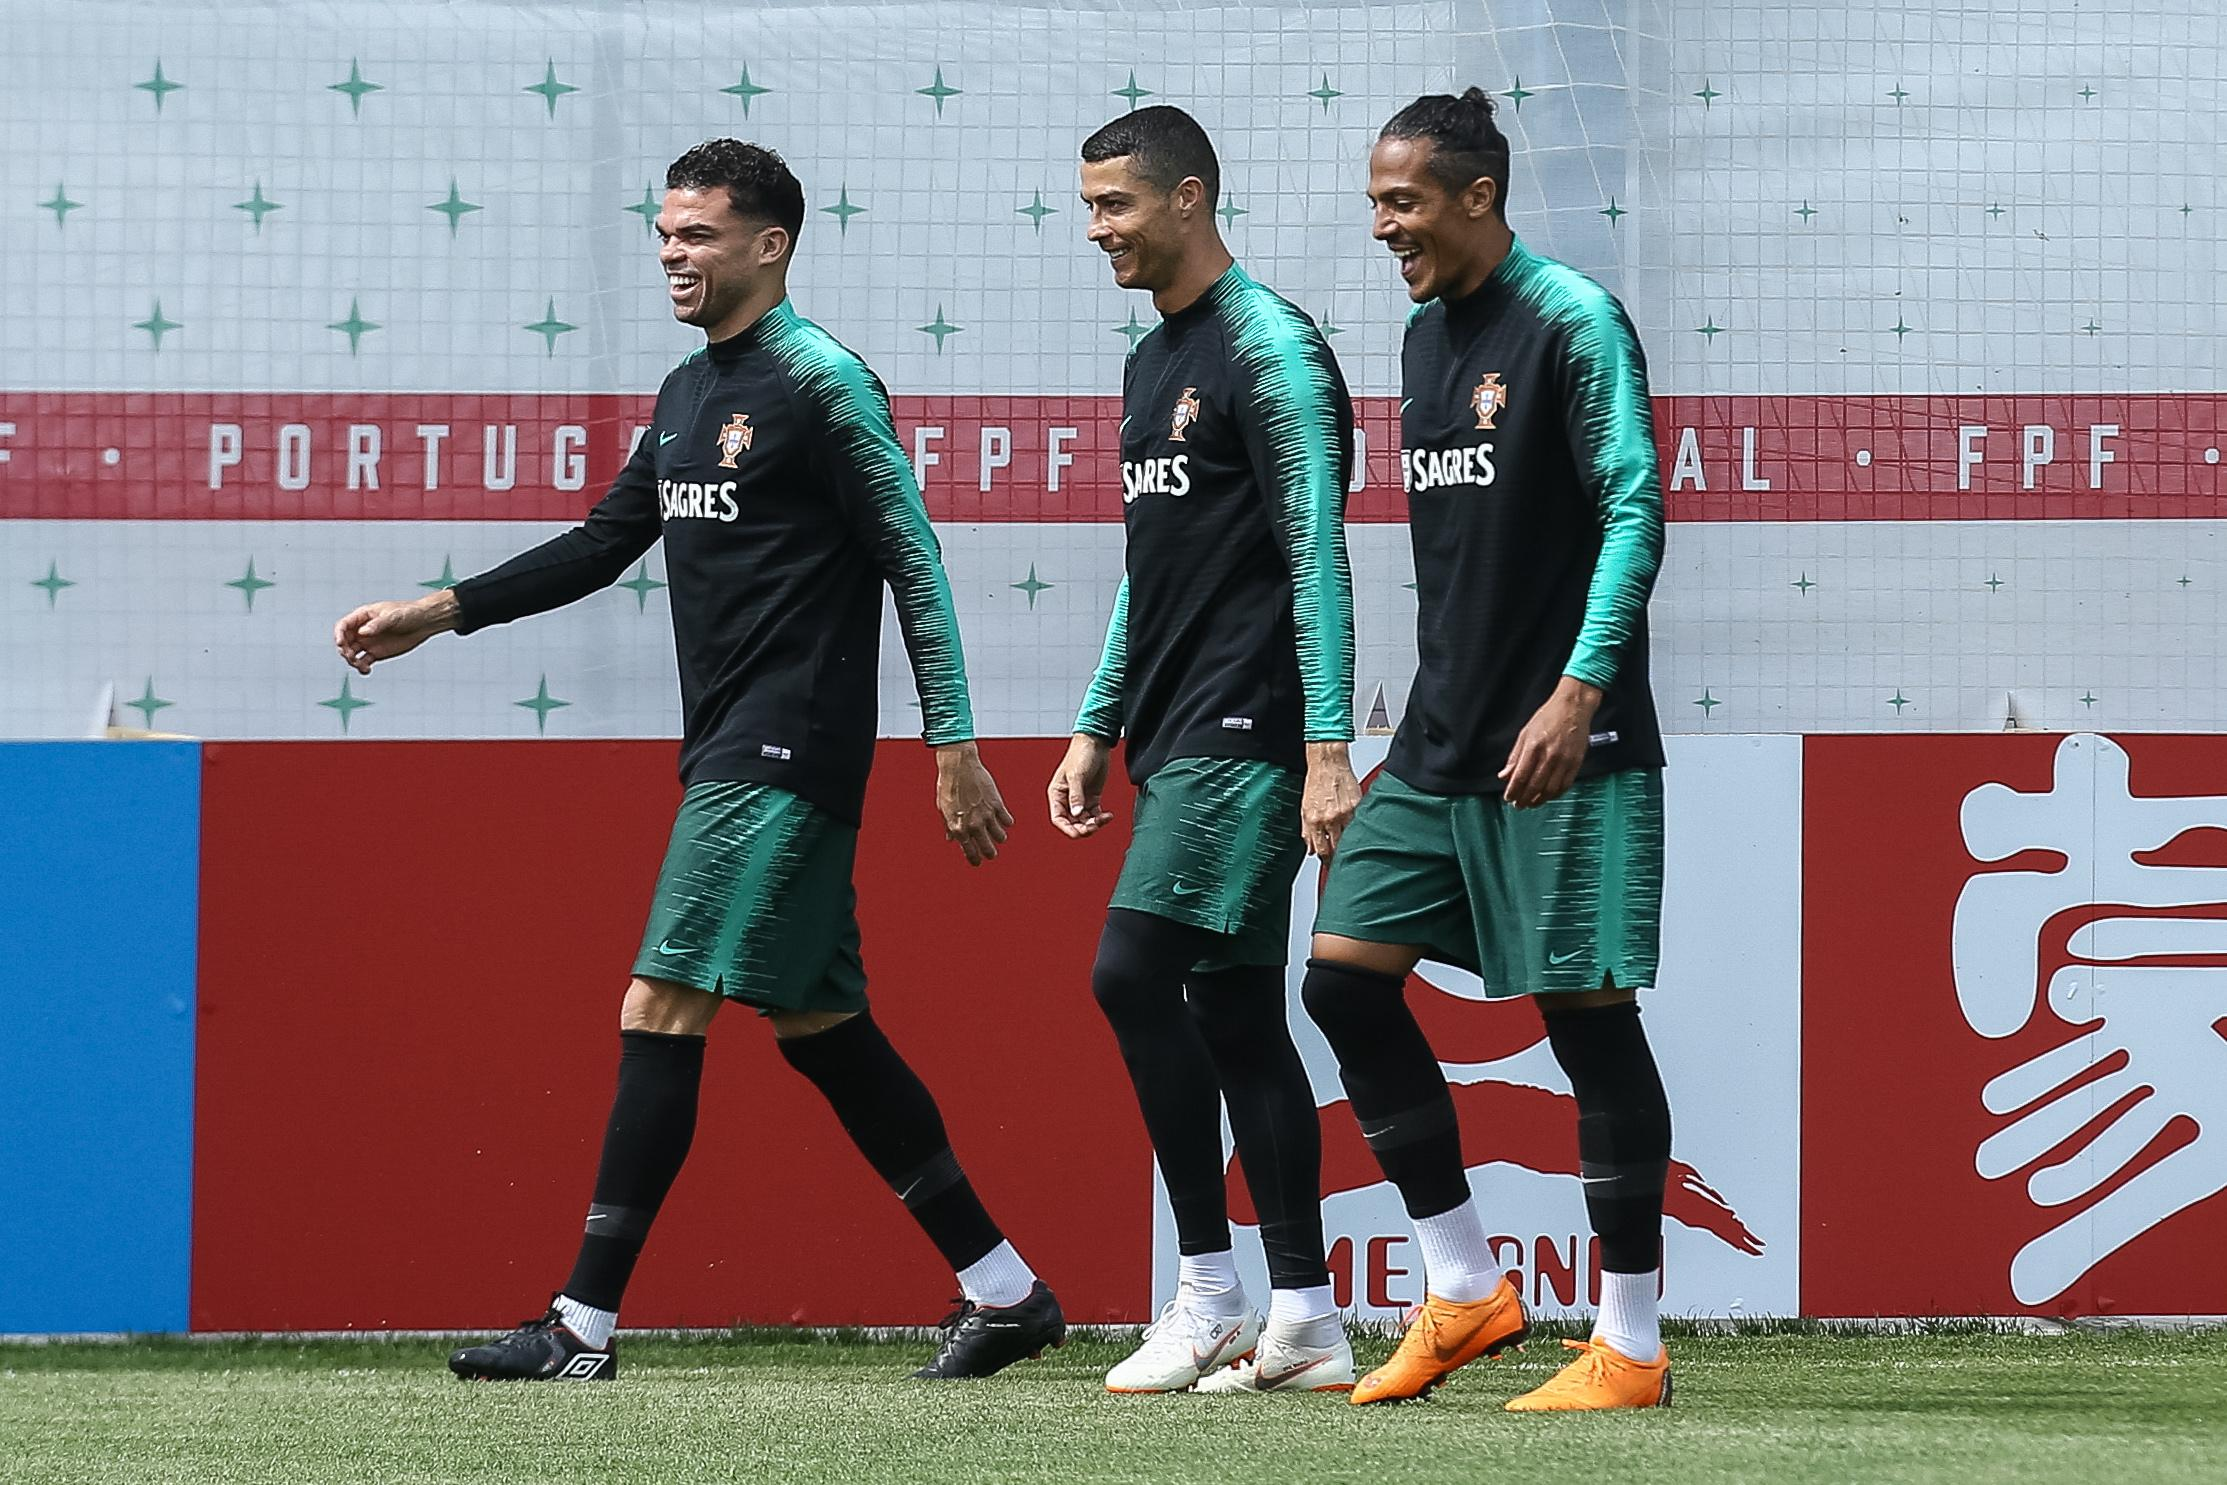 Ronaldo in an old man sandwich